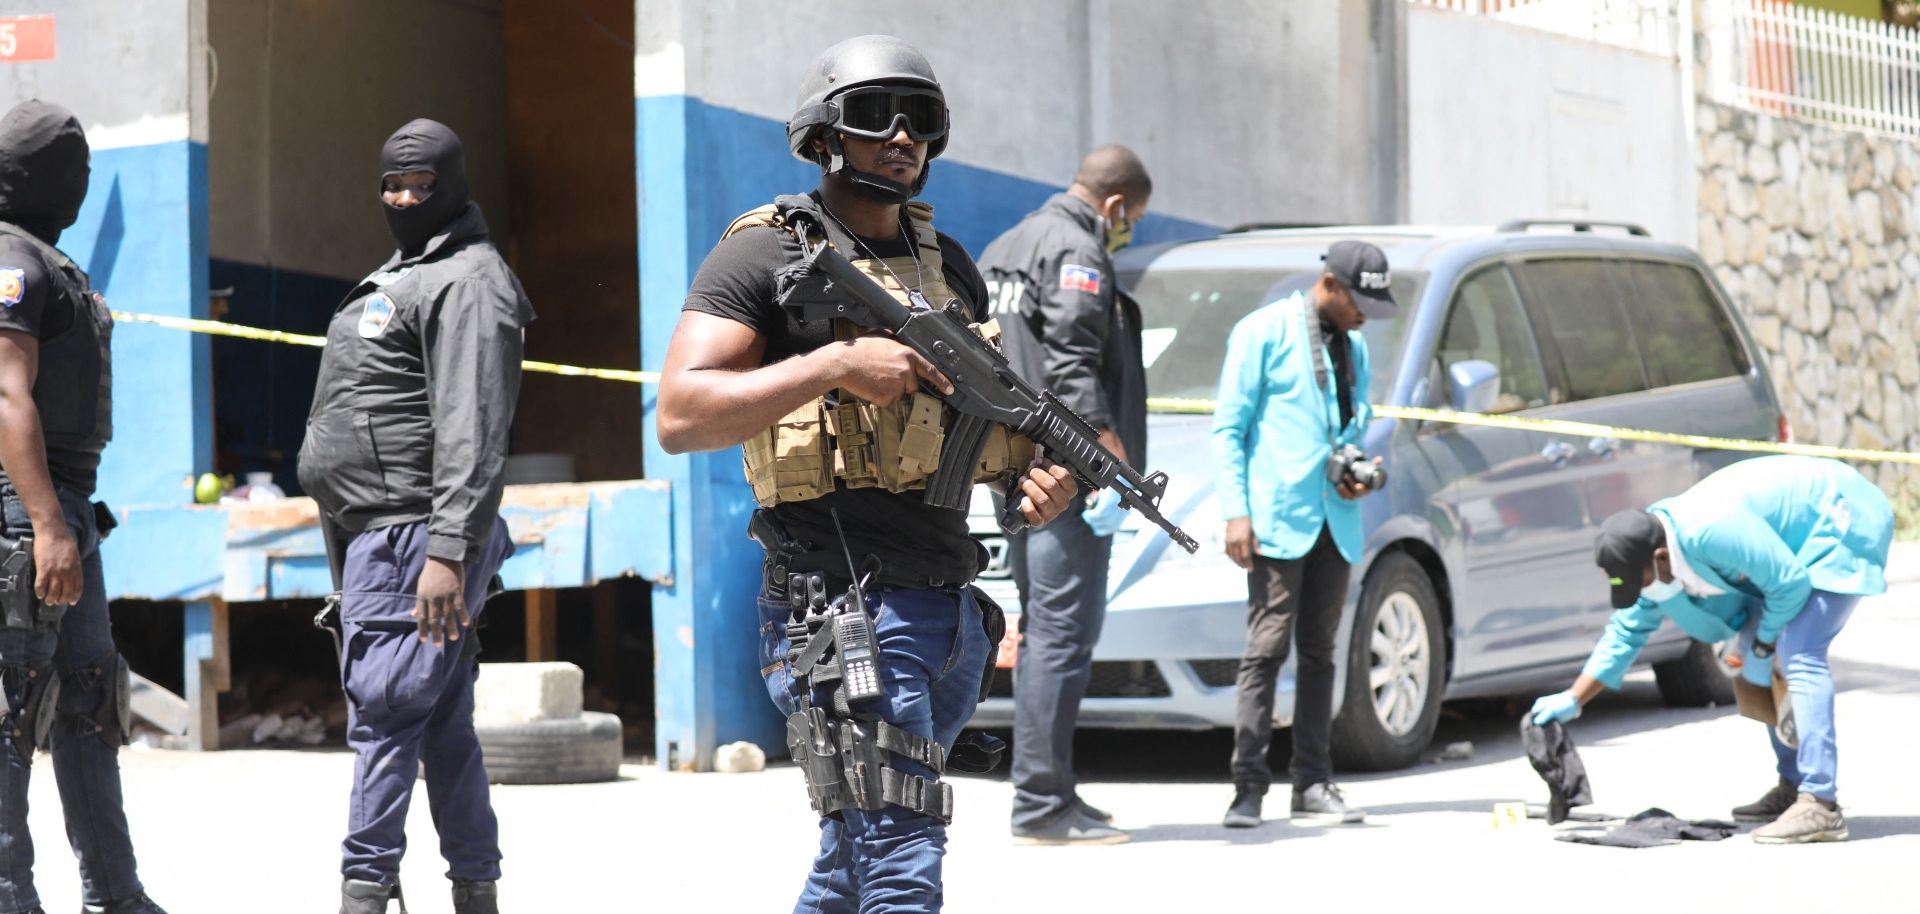 Haitian security forces look for evidence outside of President Jovenel Moise's residence in Port-au-Prince following his assassination on July 7, 2021.